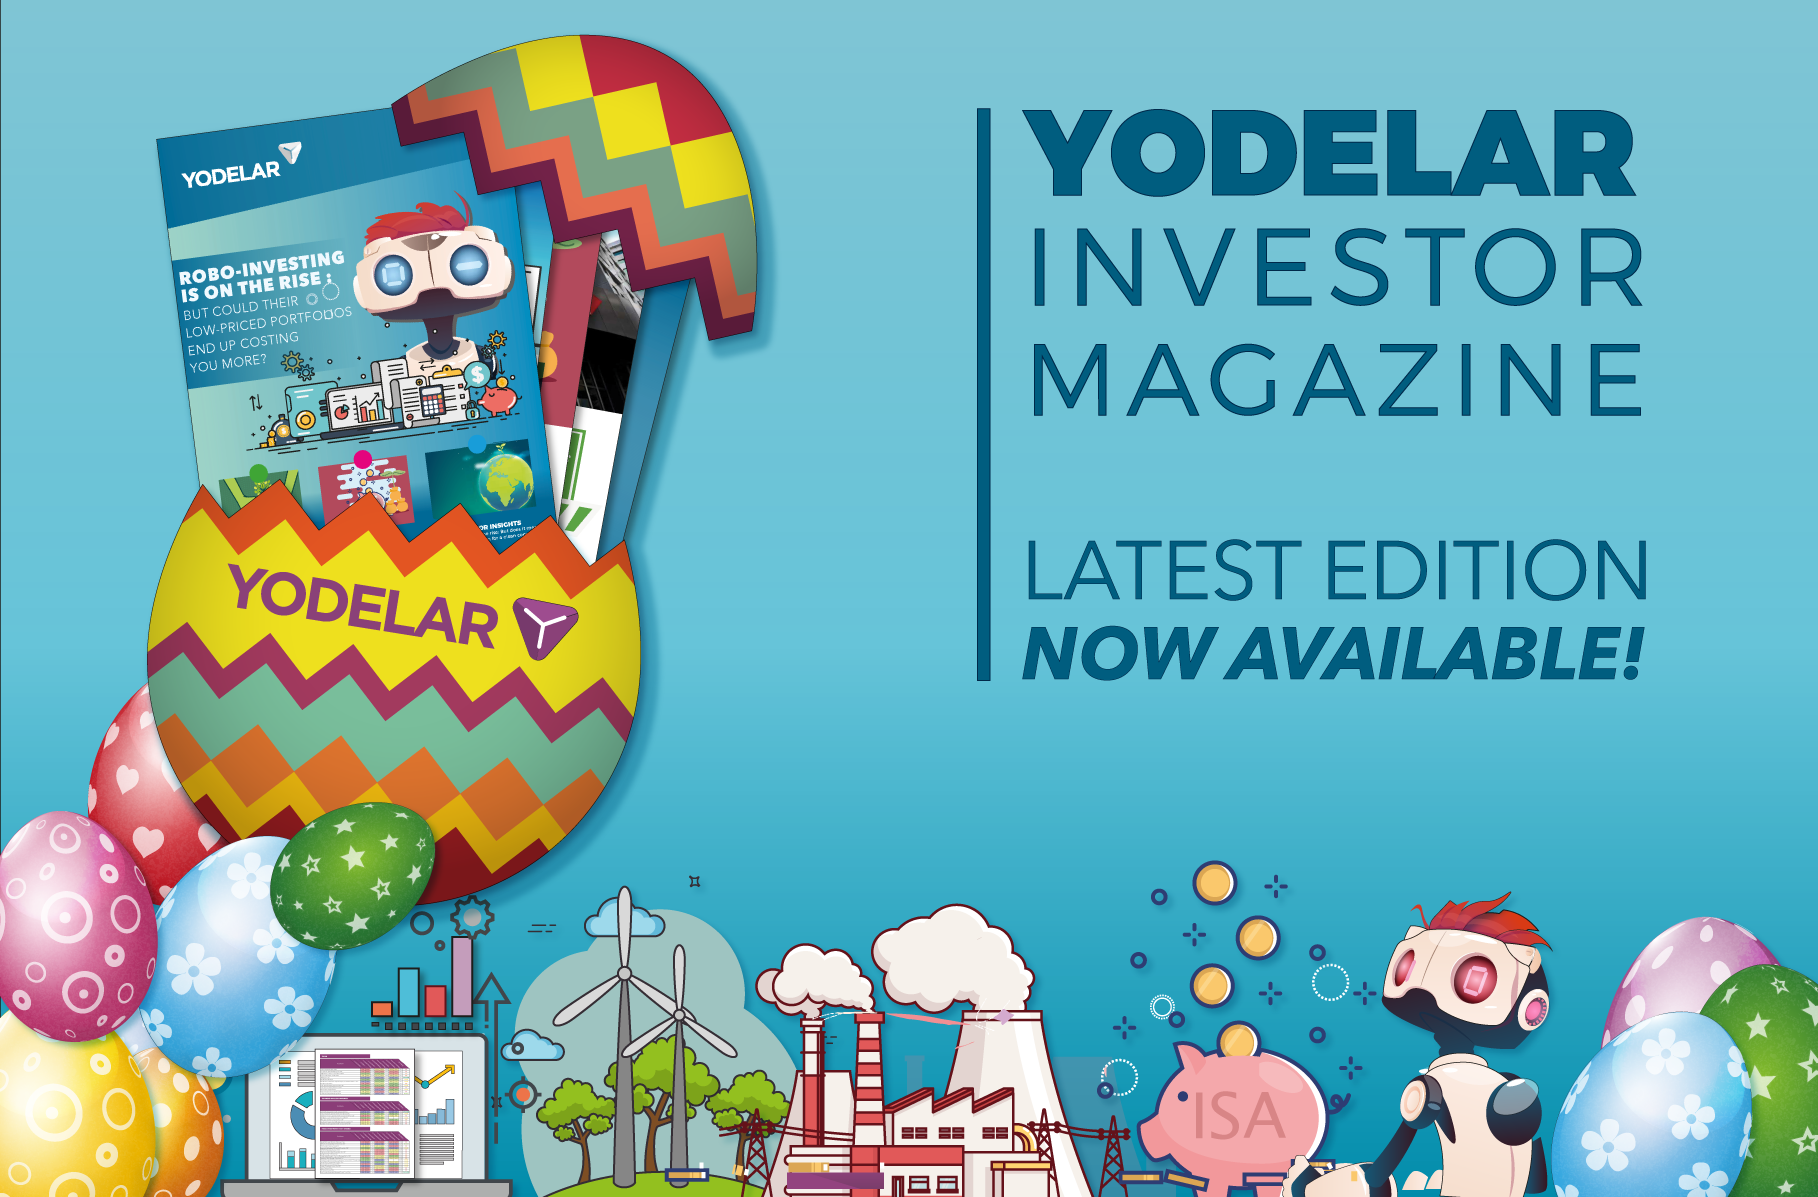 Yodelar-Easter-Edition-Investor-Magazine-Now-Available.png